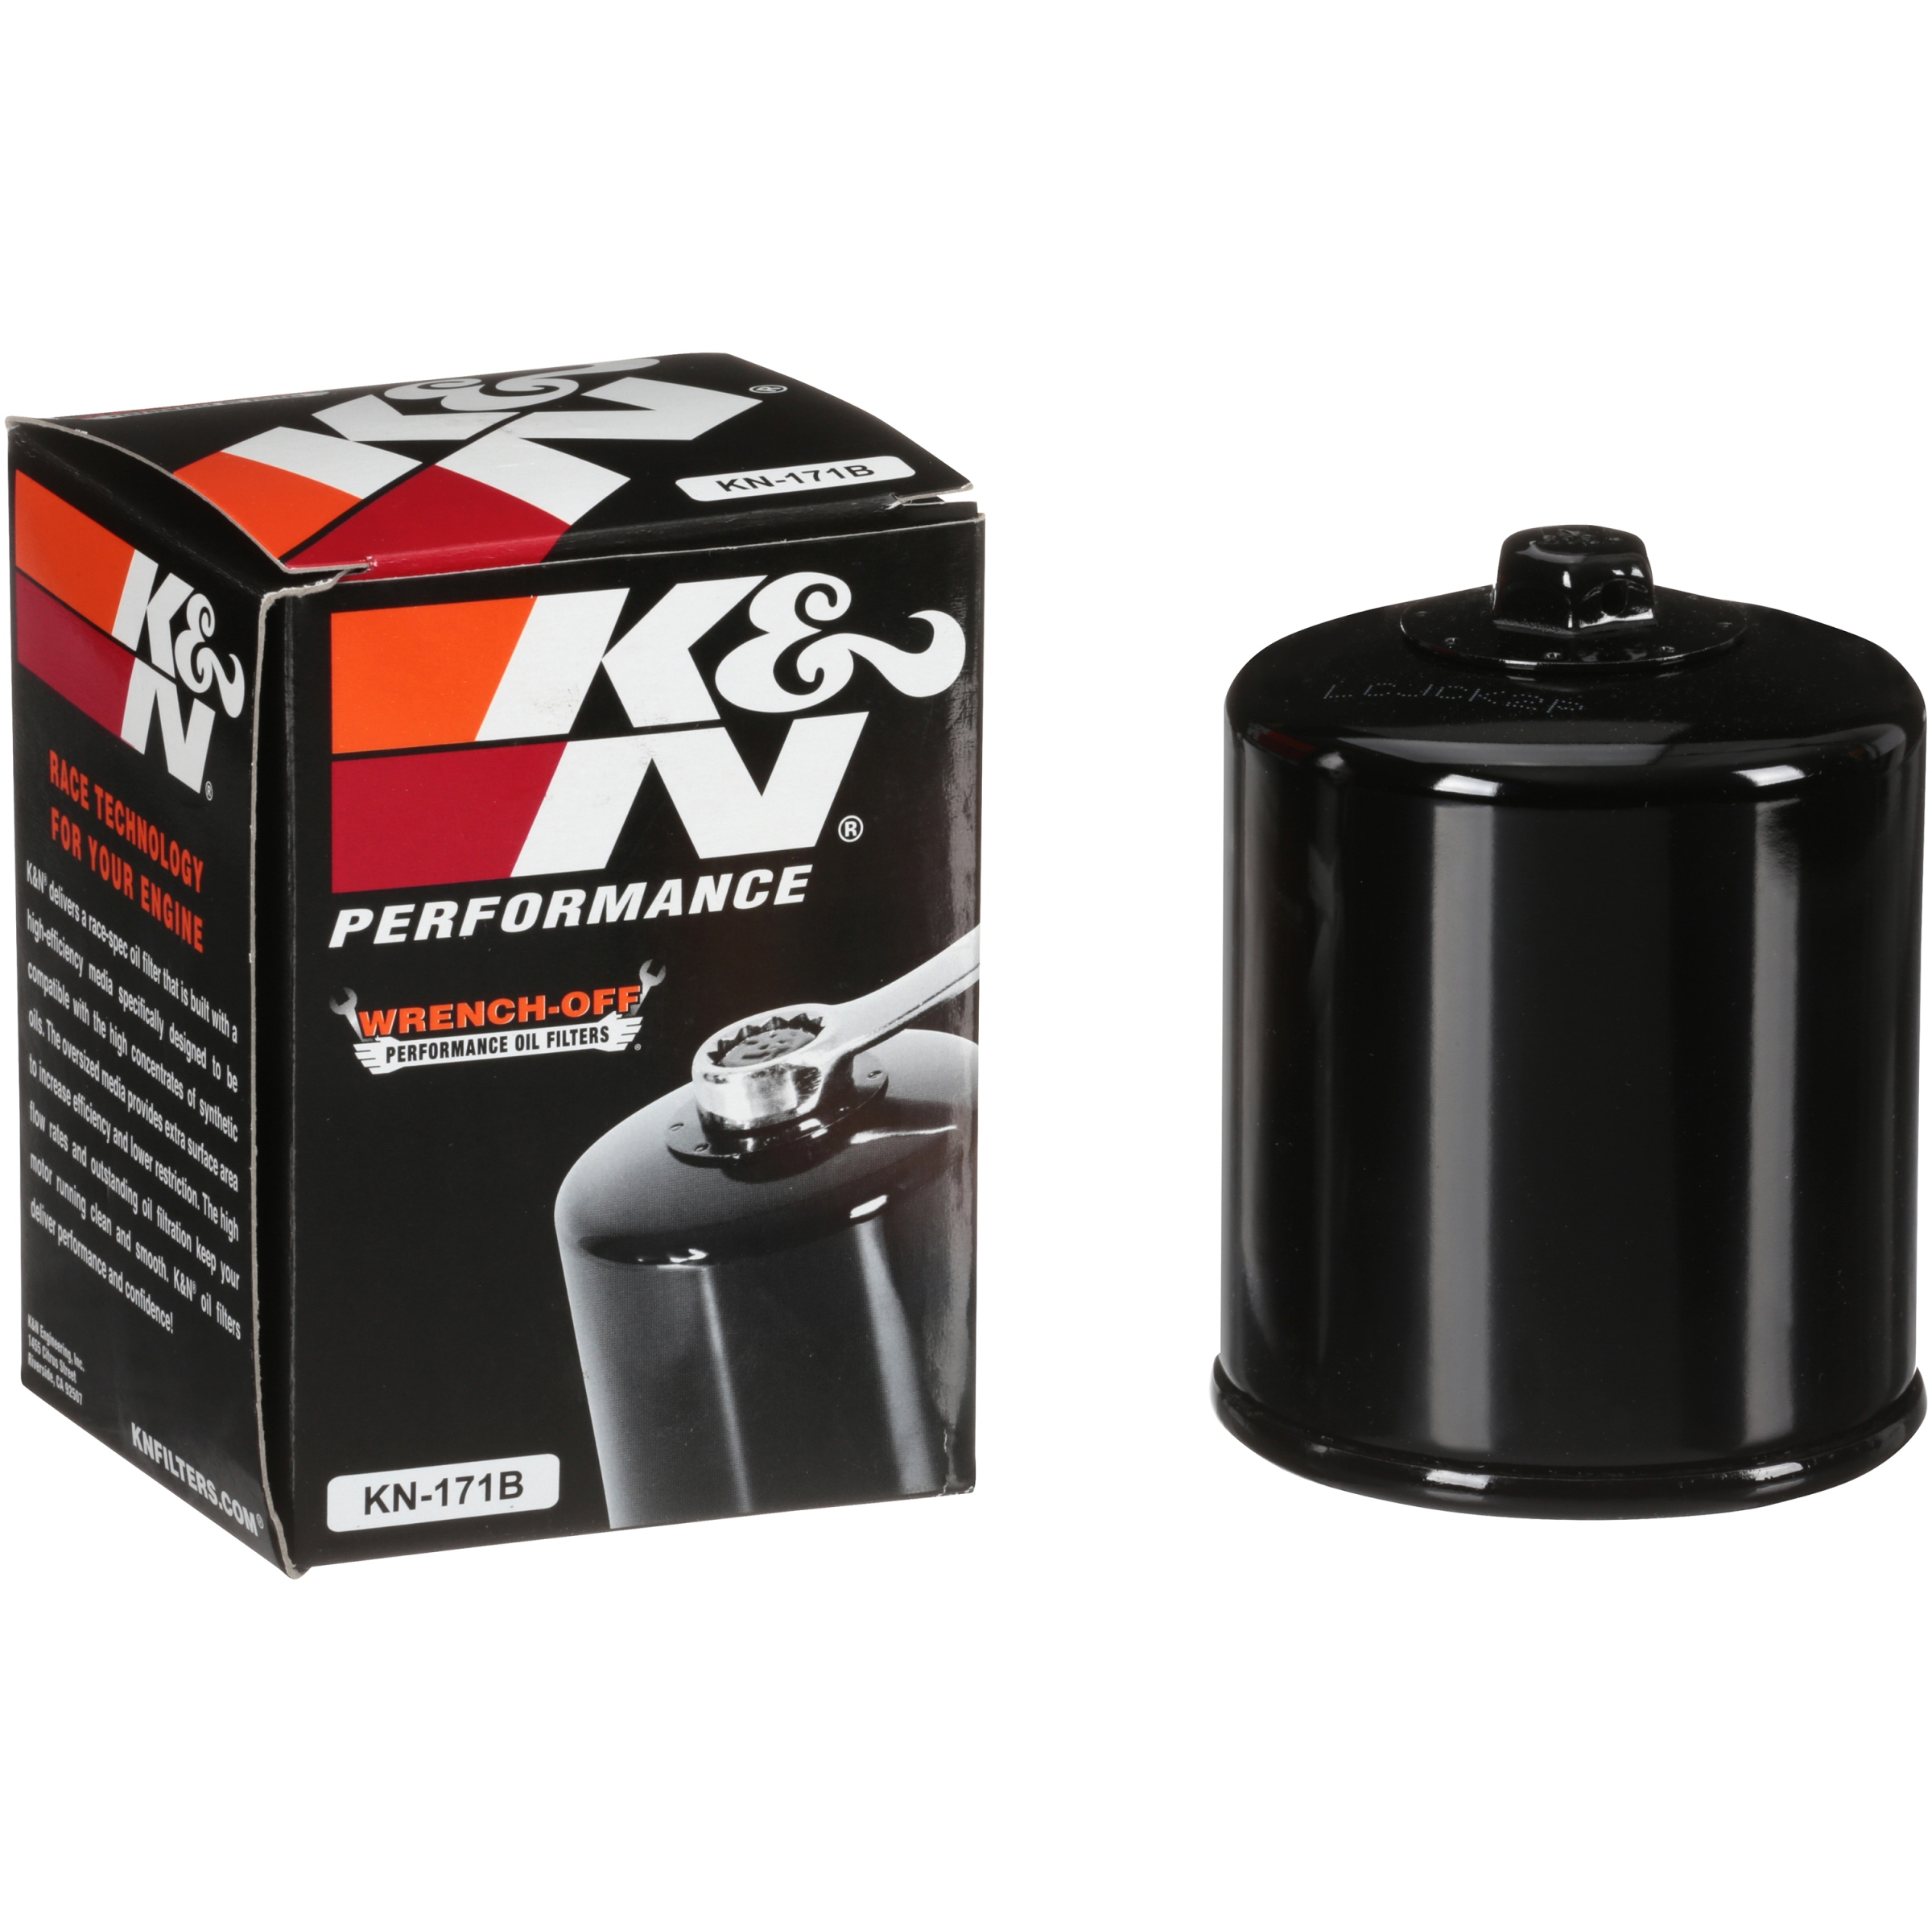 K&N® KN-171B Wrench-Off Performance Oil Filter Box